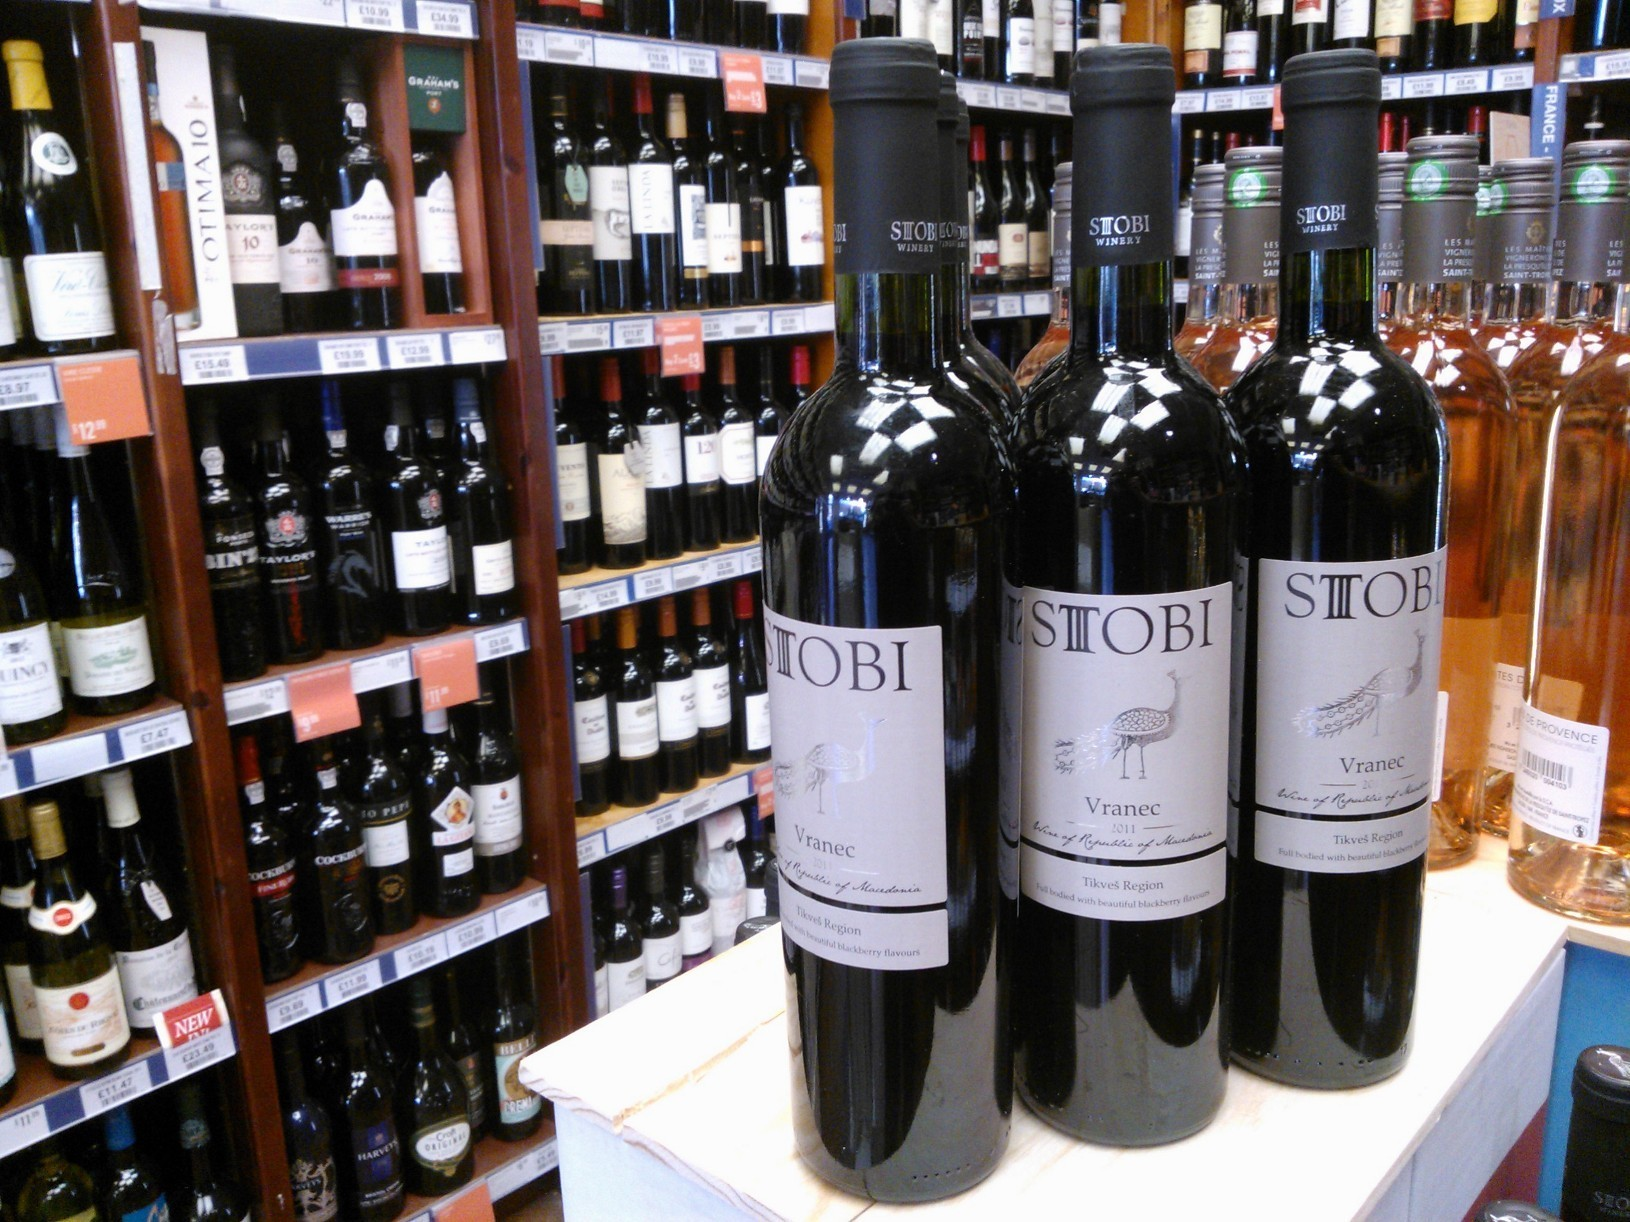 Good News - Over a Quarter of Wine Drinkers Would Pay More than £10 per Bottle